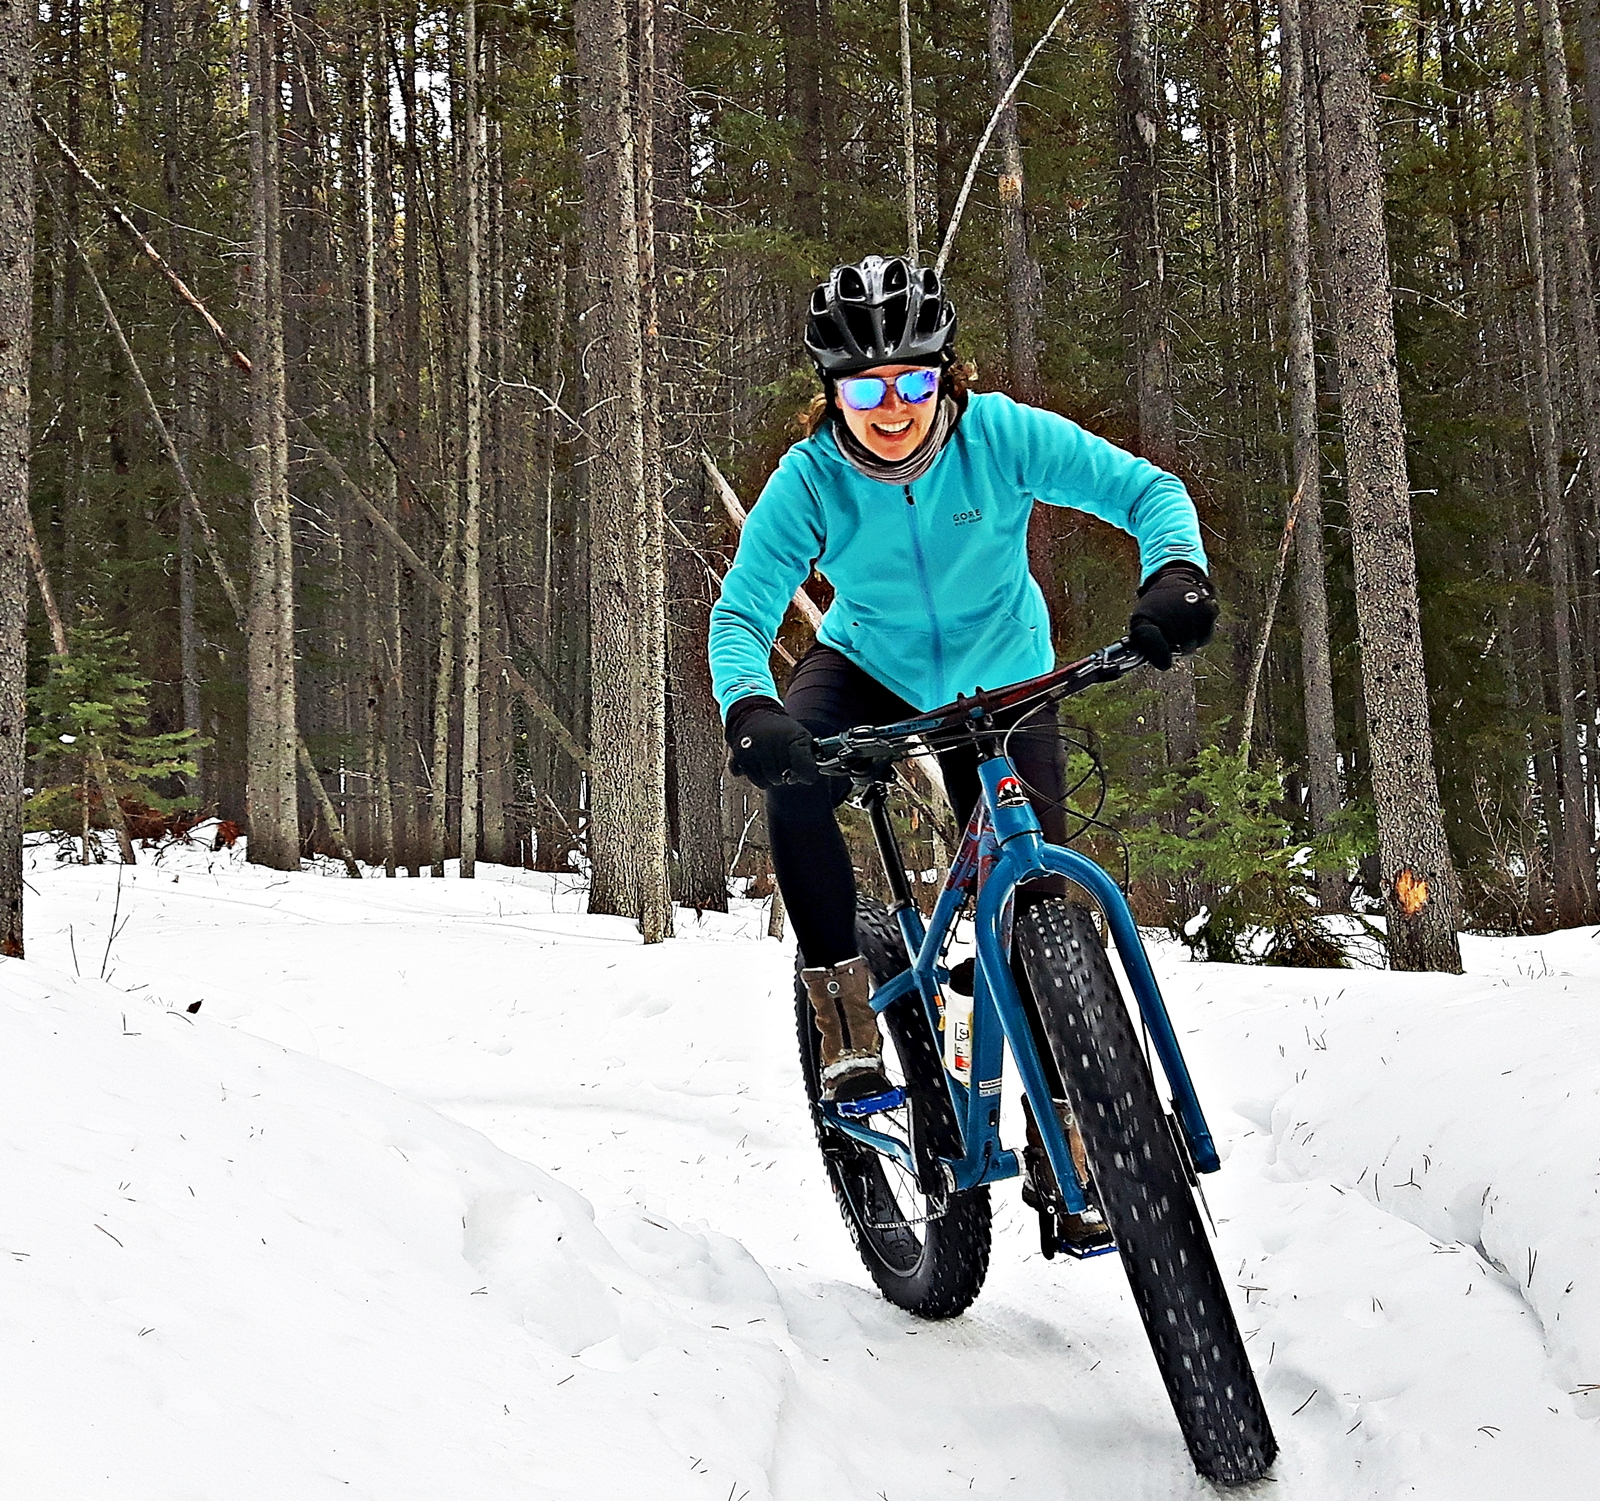 Fat biking bliss on Alberta snow in Bragg Creek